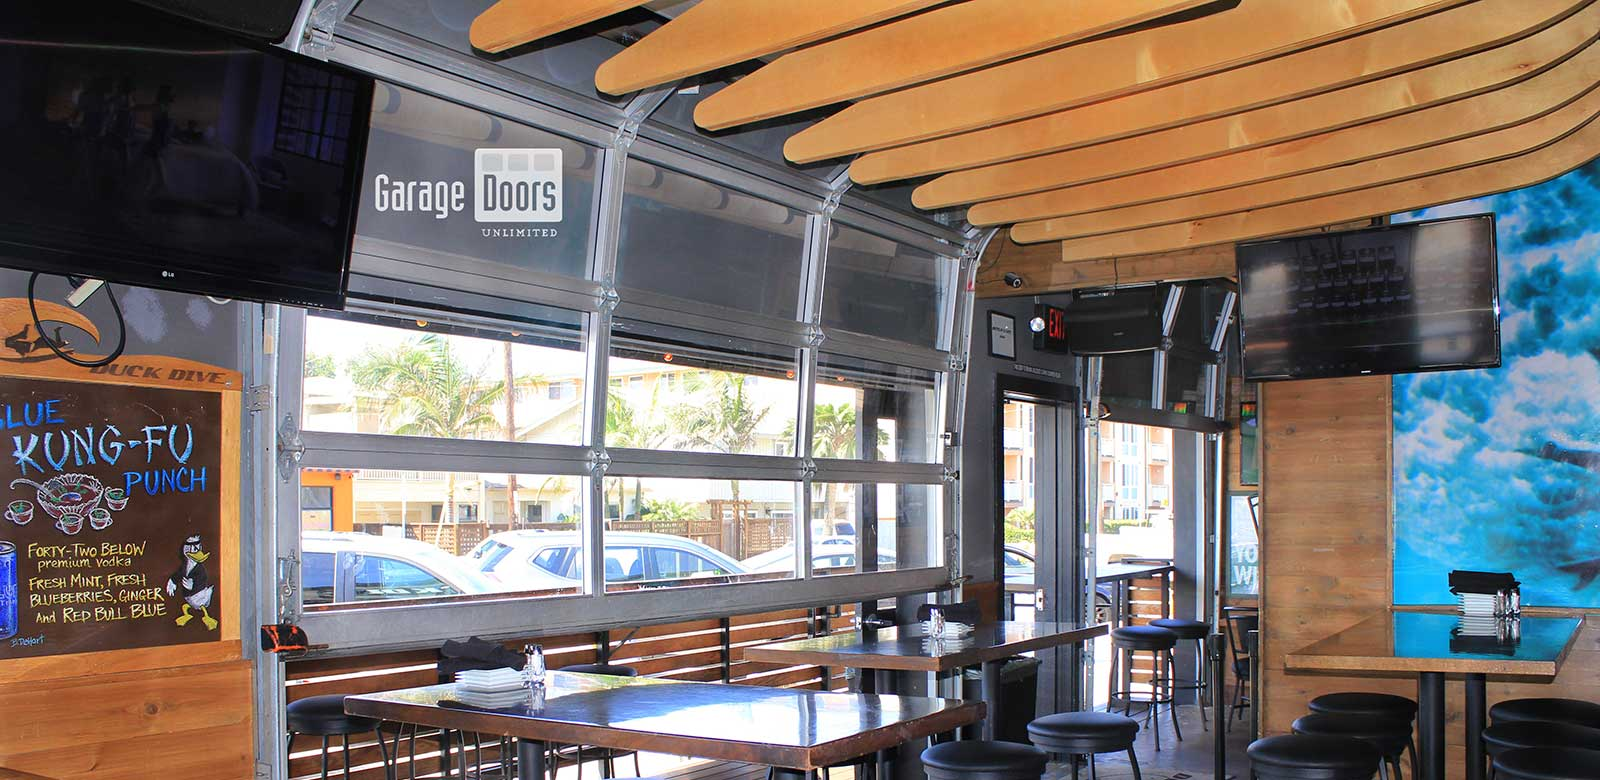 Garage Bar Grill Bar Restaurant Doors Garage Doors Unlimited Gdu Garage Doors